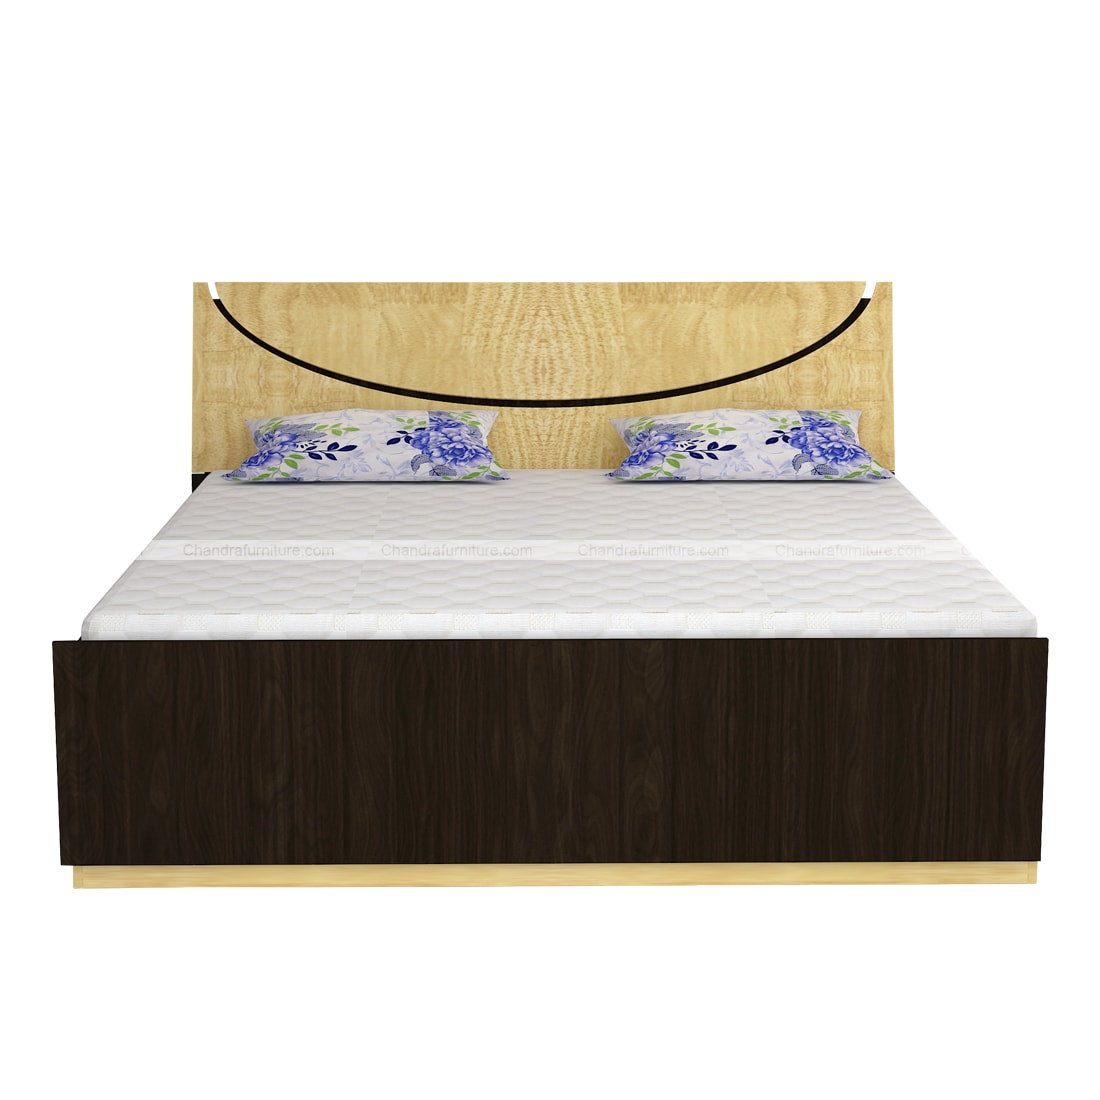 Chandra Furniture King Size Bed - Smile